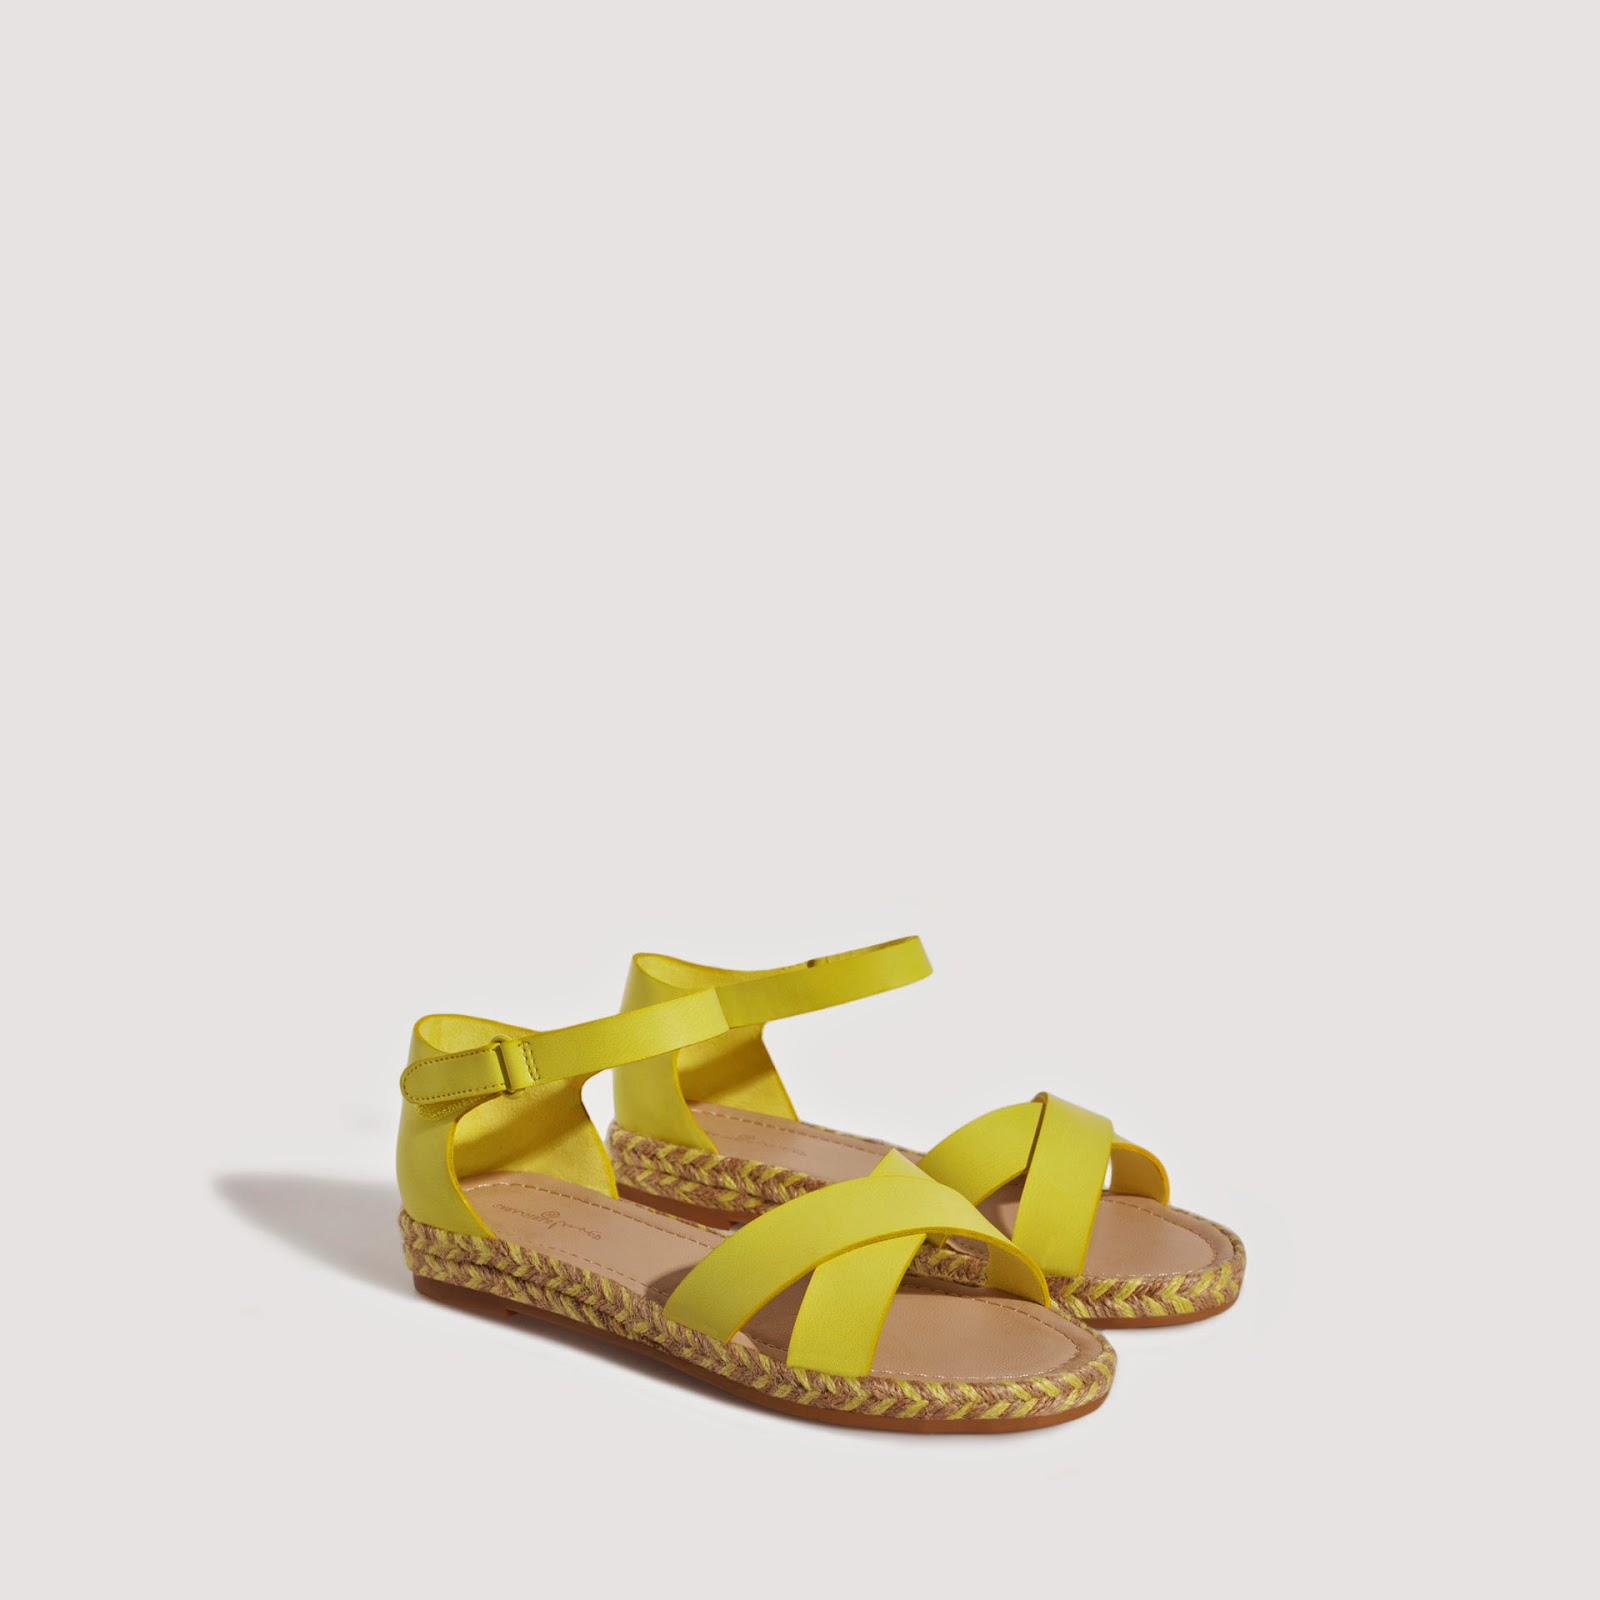 Sandalias Niña/Sandals Kid: ZARA